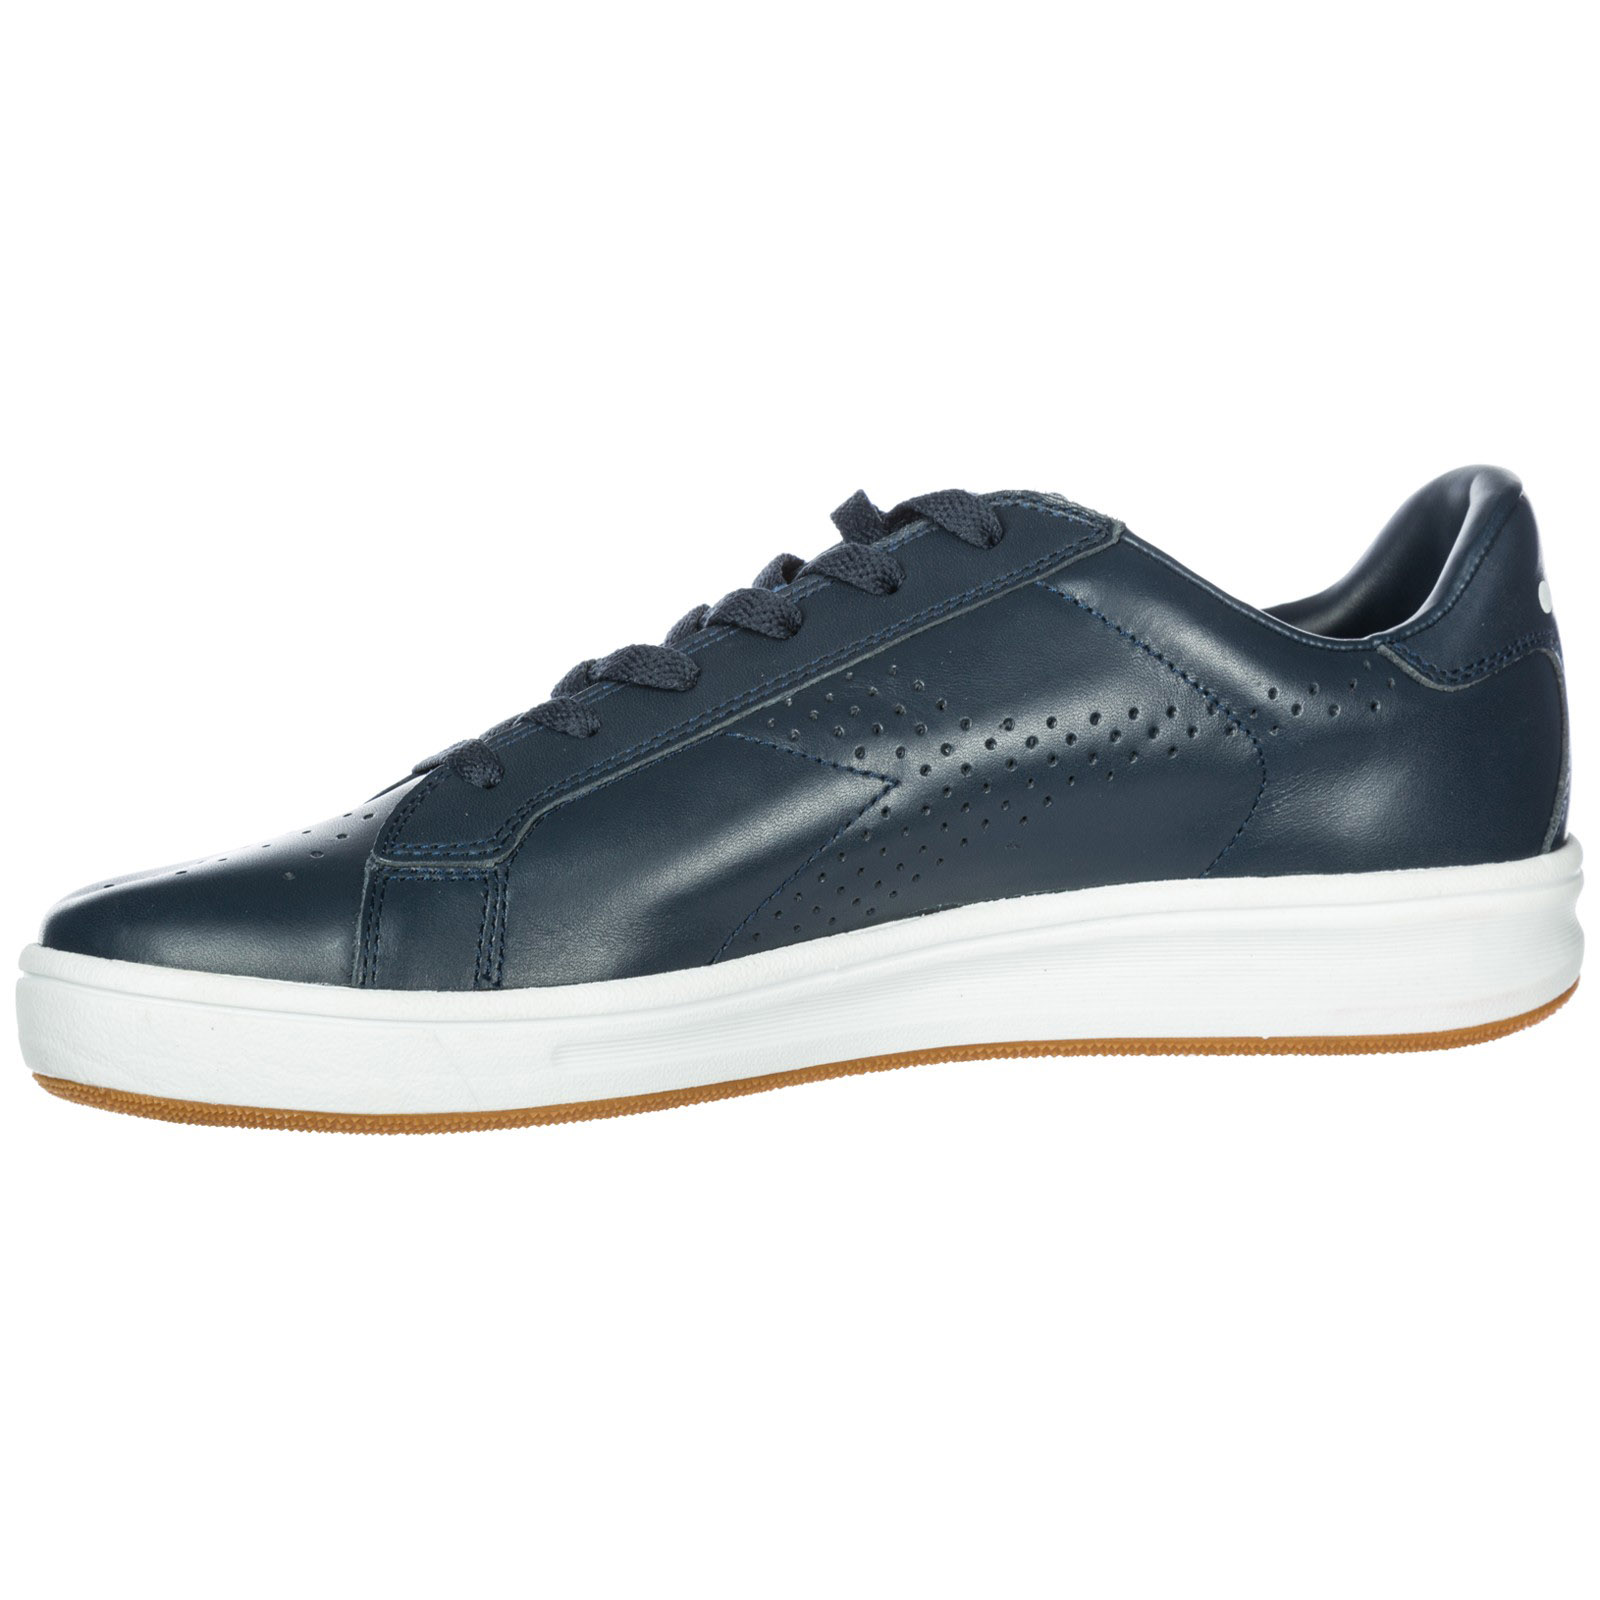 bc16bc91cb Men's shoes leather trainers sneakers martin